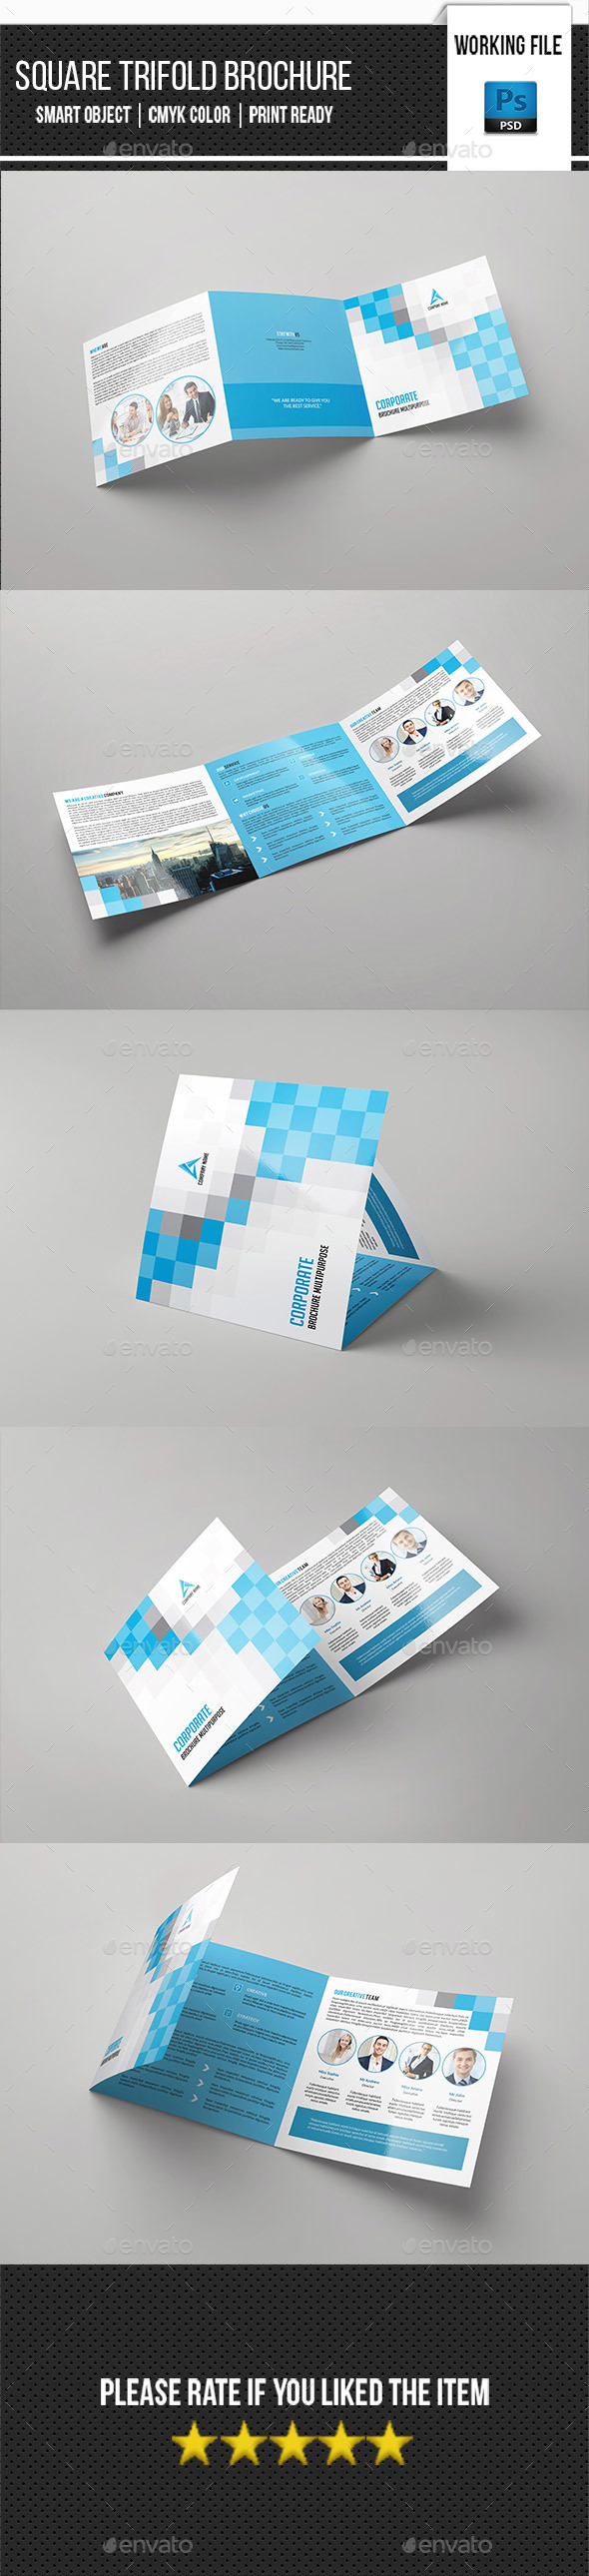 Corporate Square Trifold Brochure-V84 - Corporate Brochures